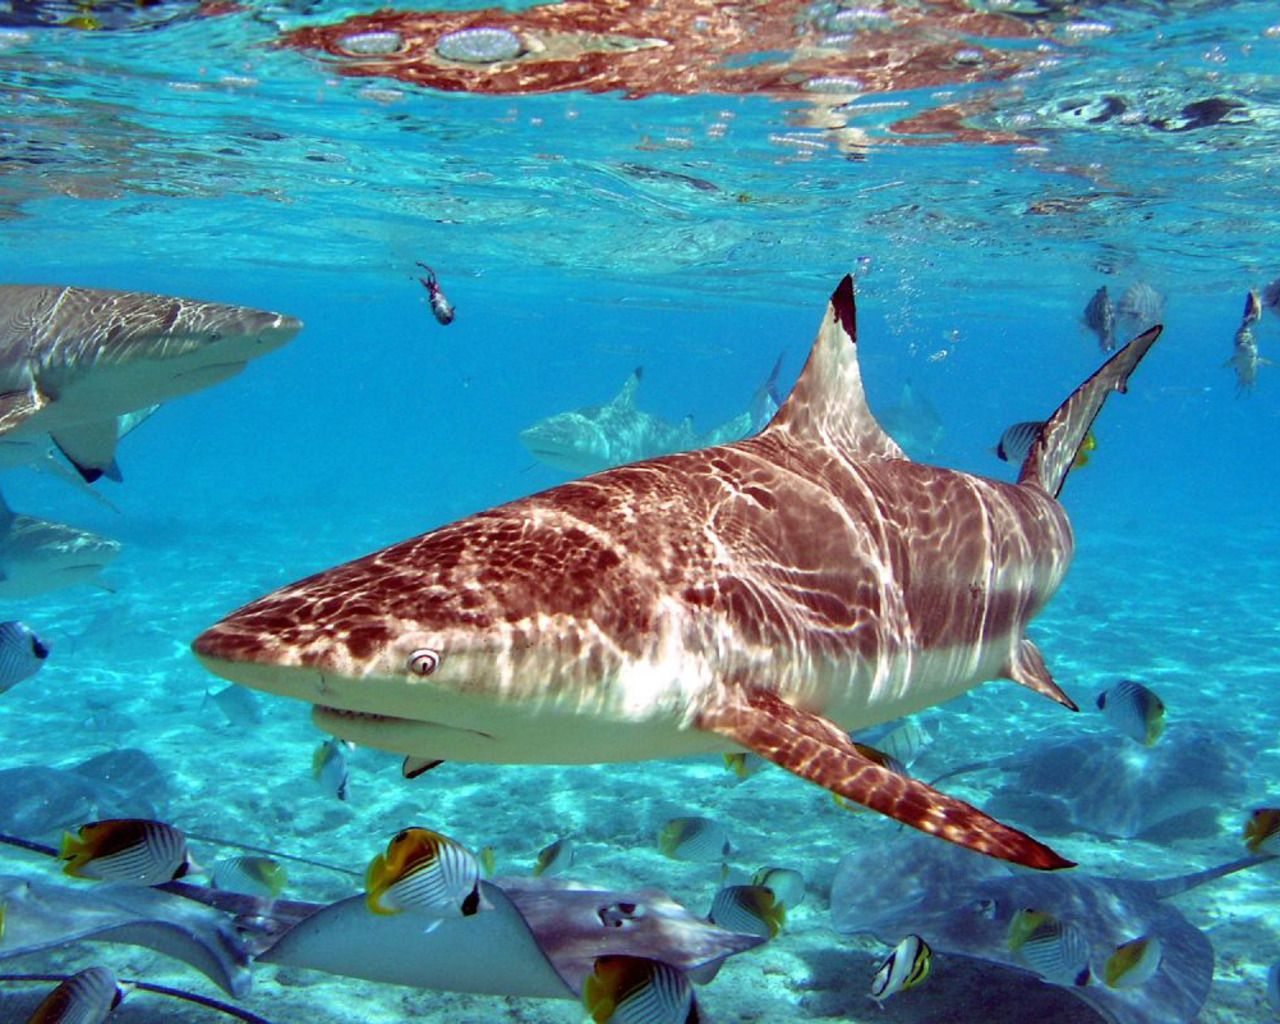 Sand tiger shark information amp pictures of sand tiger sharks - The Beautiful Sand Tiger Shark Likes To Live Close To Sandy Beaches Thus They Were Named Sandy Tiger Sharks This Species Is Threatened And Categorized As